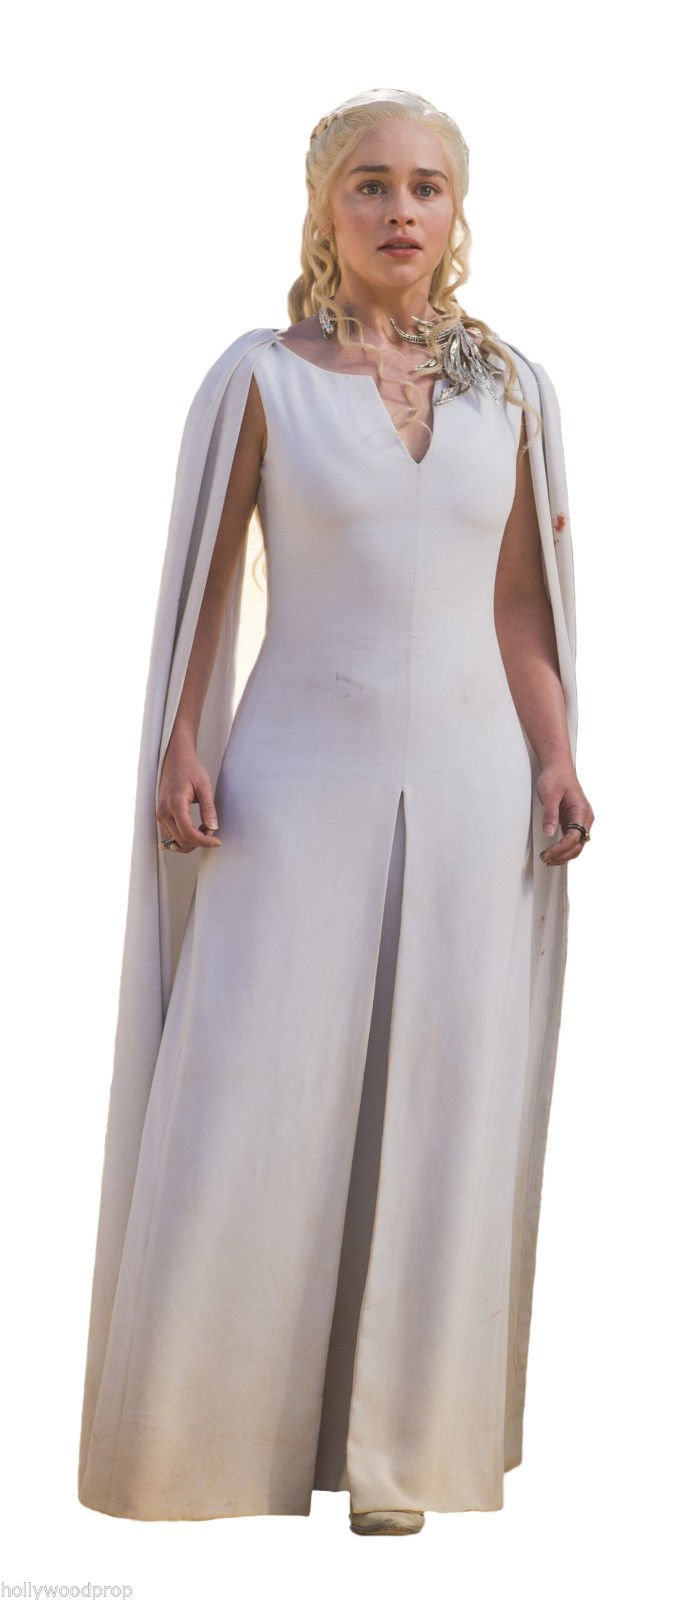 GAME OF THRONES DAENERYS MOTHER OF DRAGONS EMILIA CLARKE LIFESIZE CARDBOARD STANDUP STANDEE CUTOUT POSTER FIGURE by Hollywoodprop